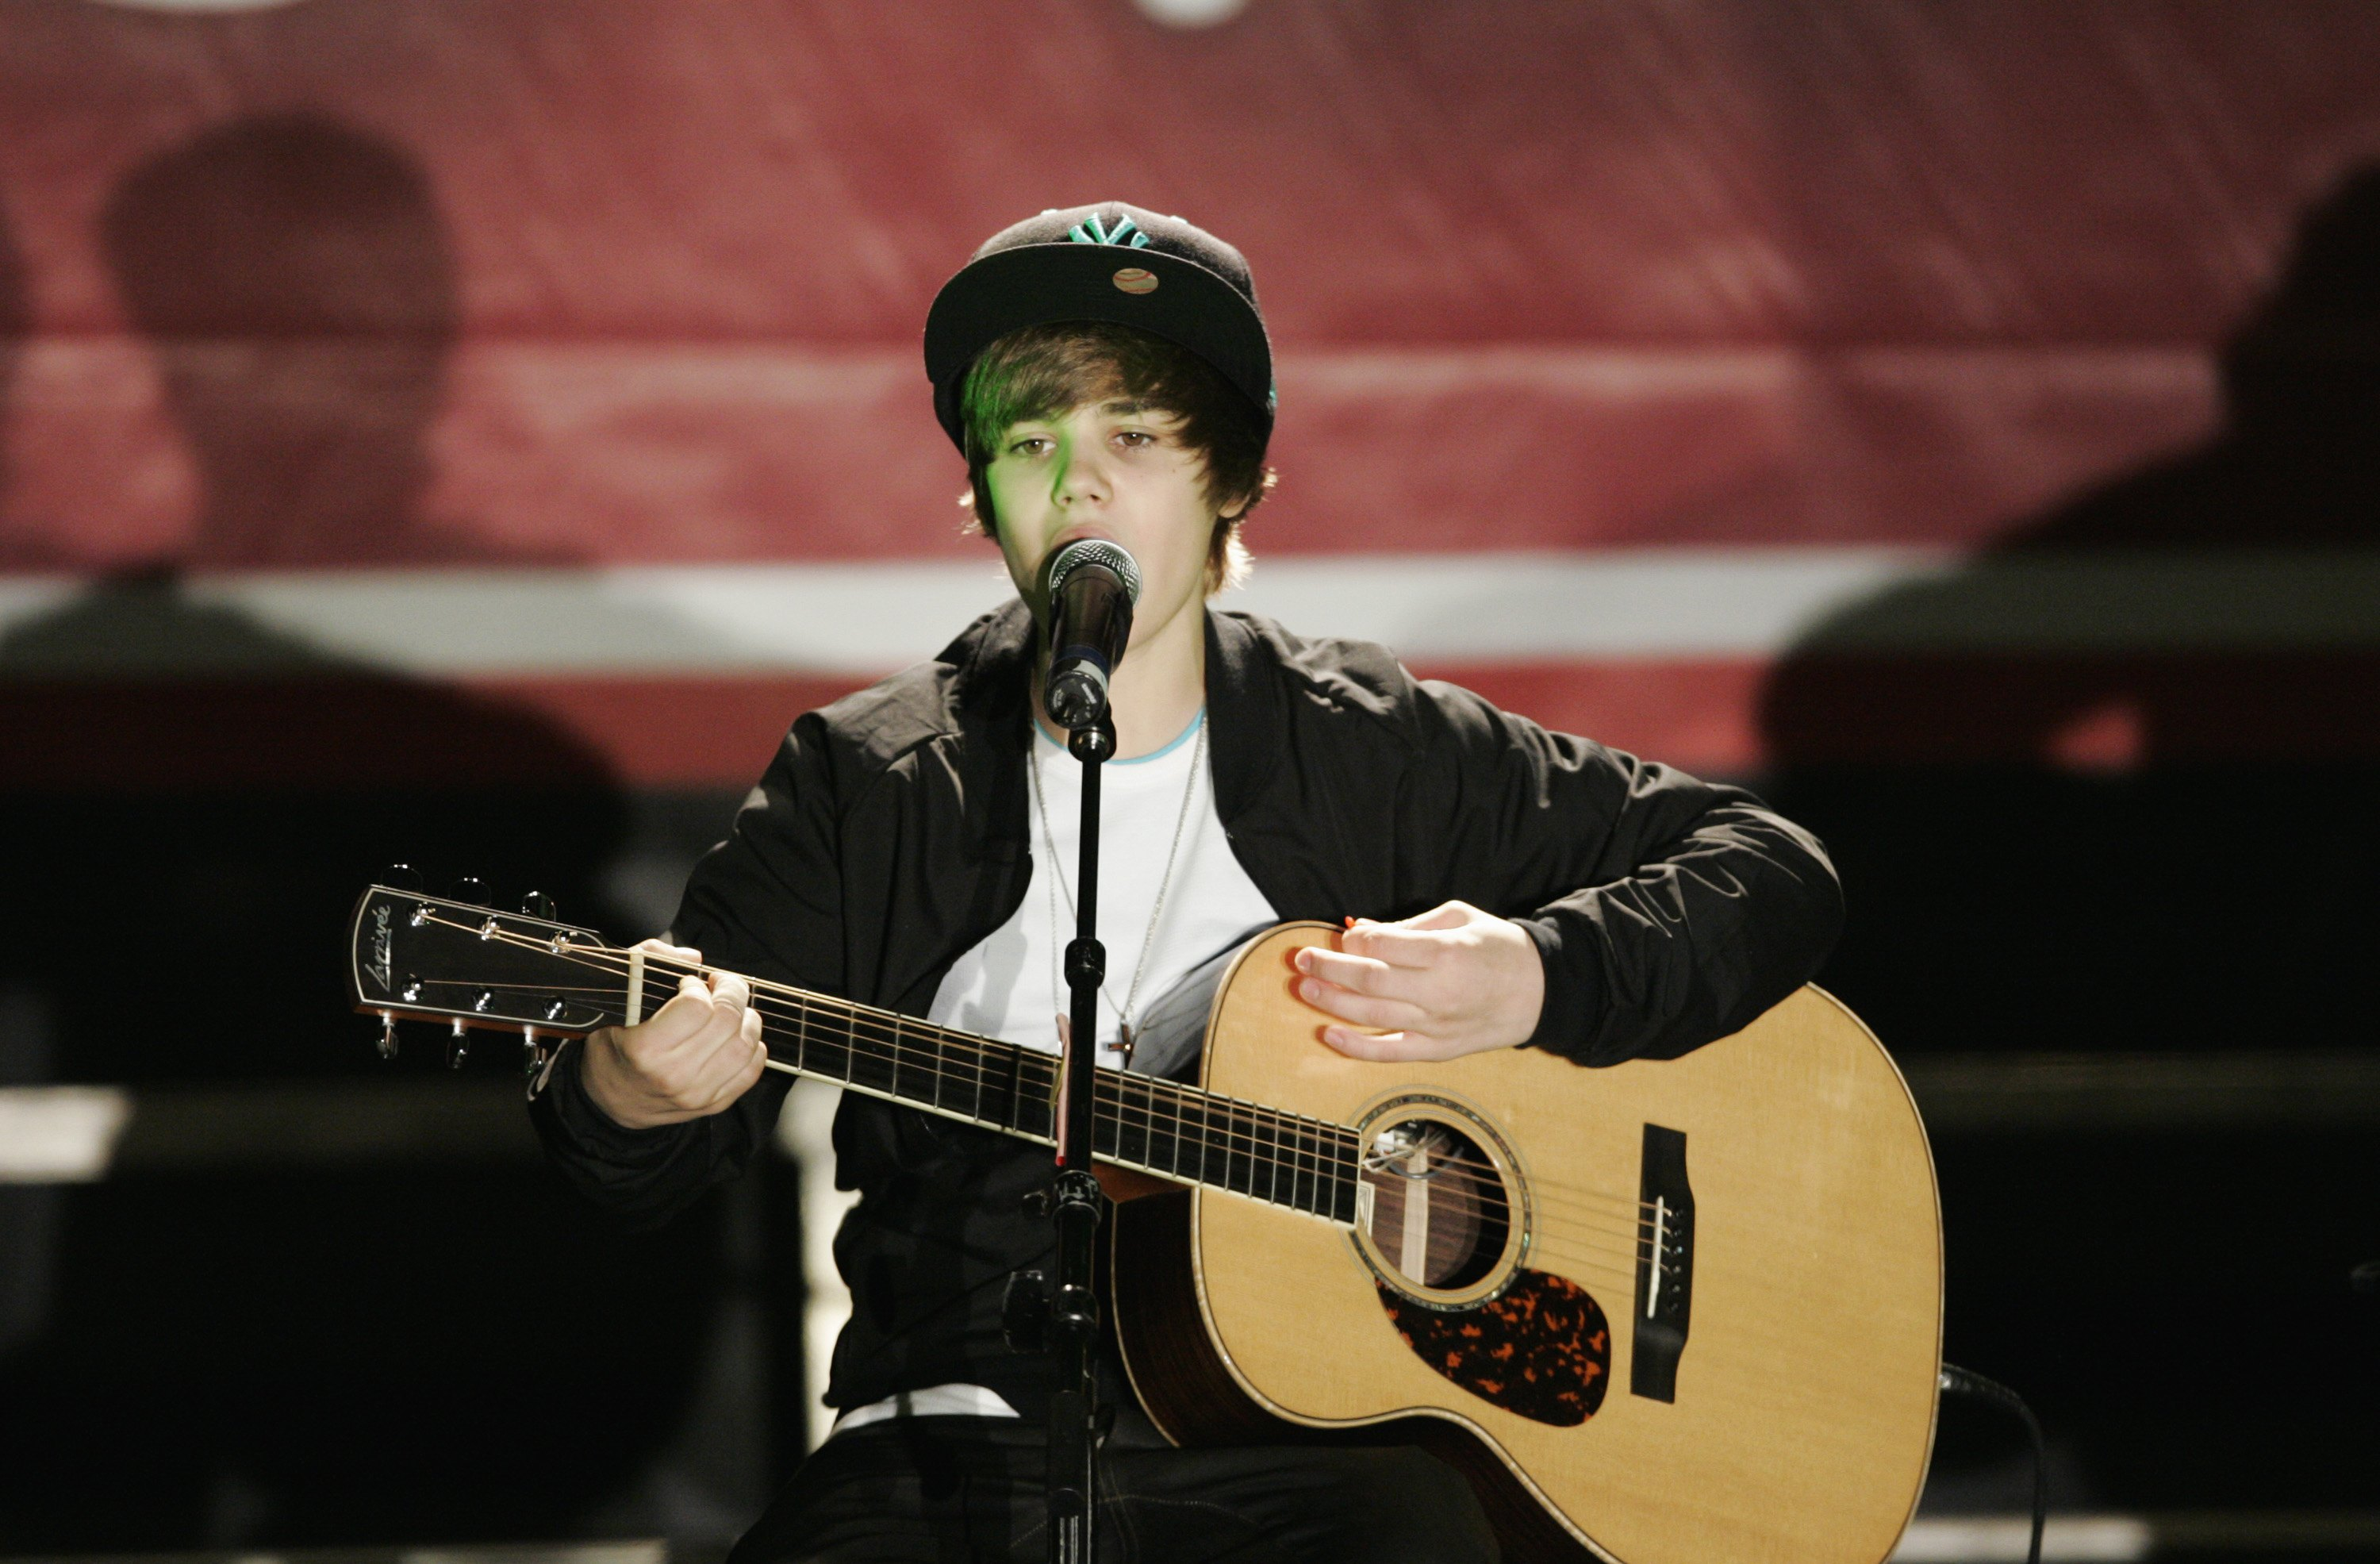 Justin-Bieber-performs-at-a-Radio-Disney-AM-1110-Concert-in-Los-Angeles-on-August-3-2008